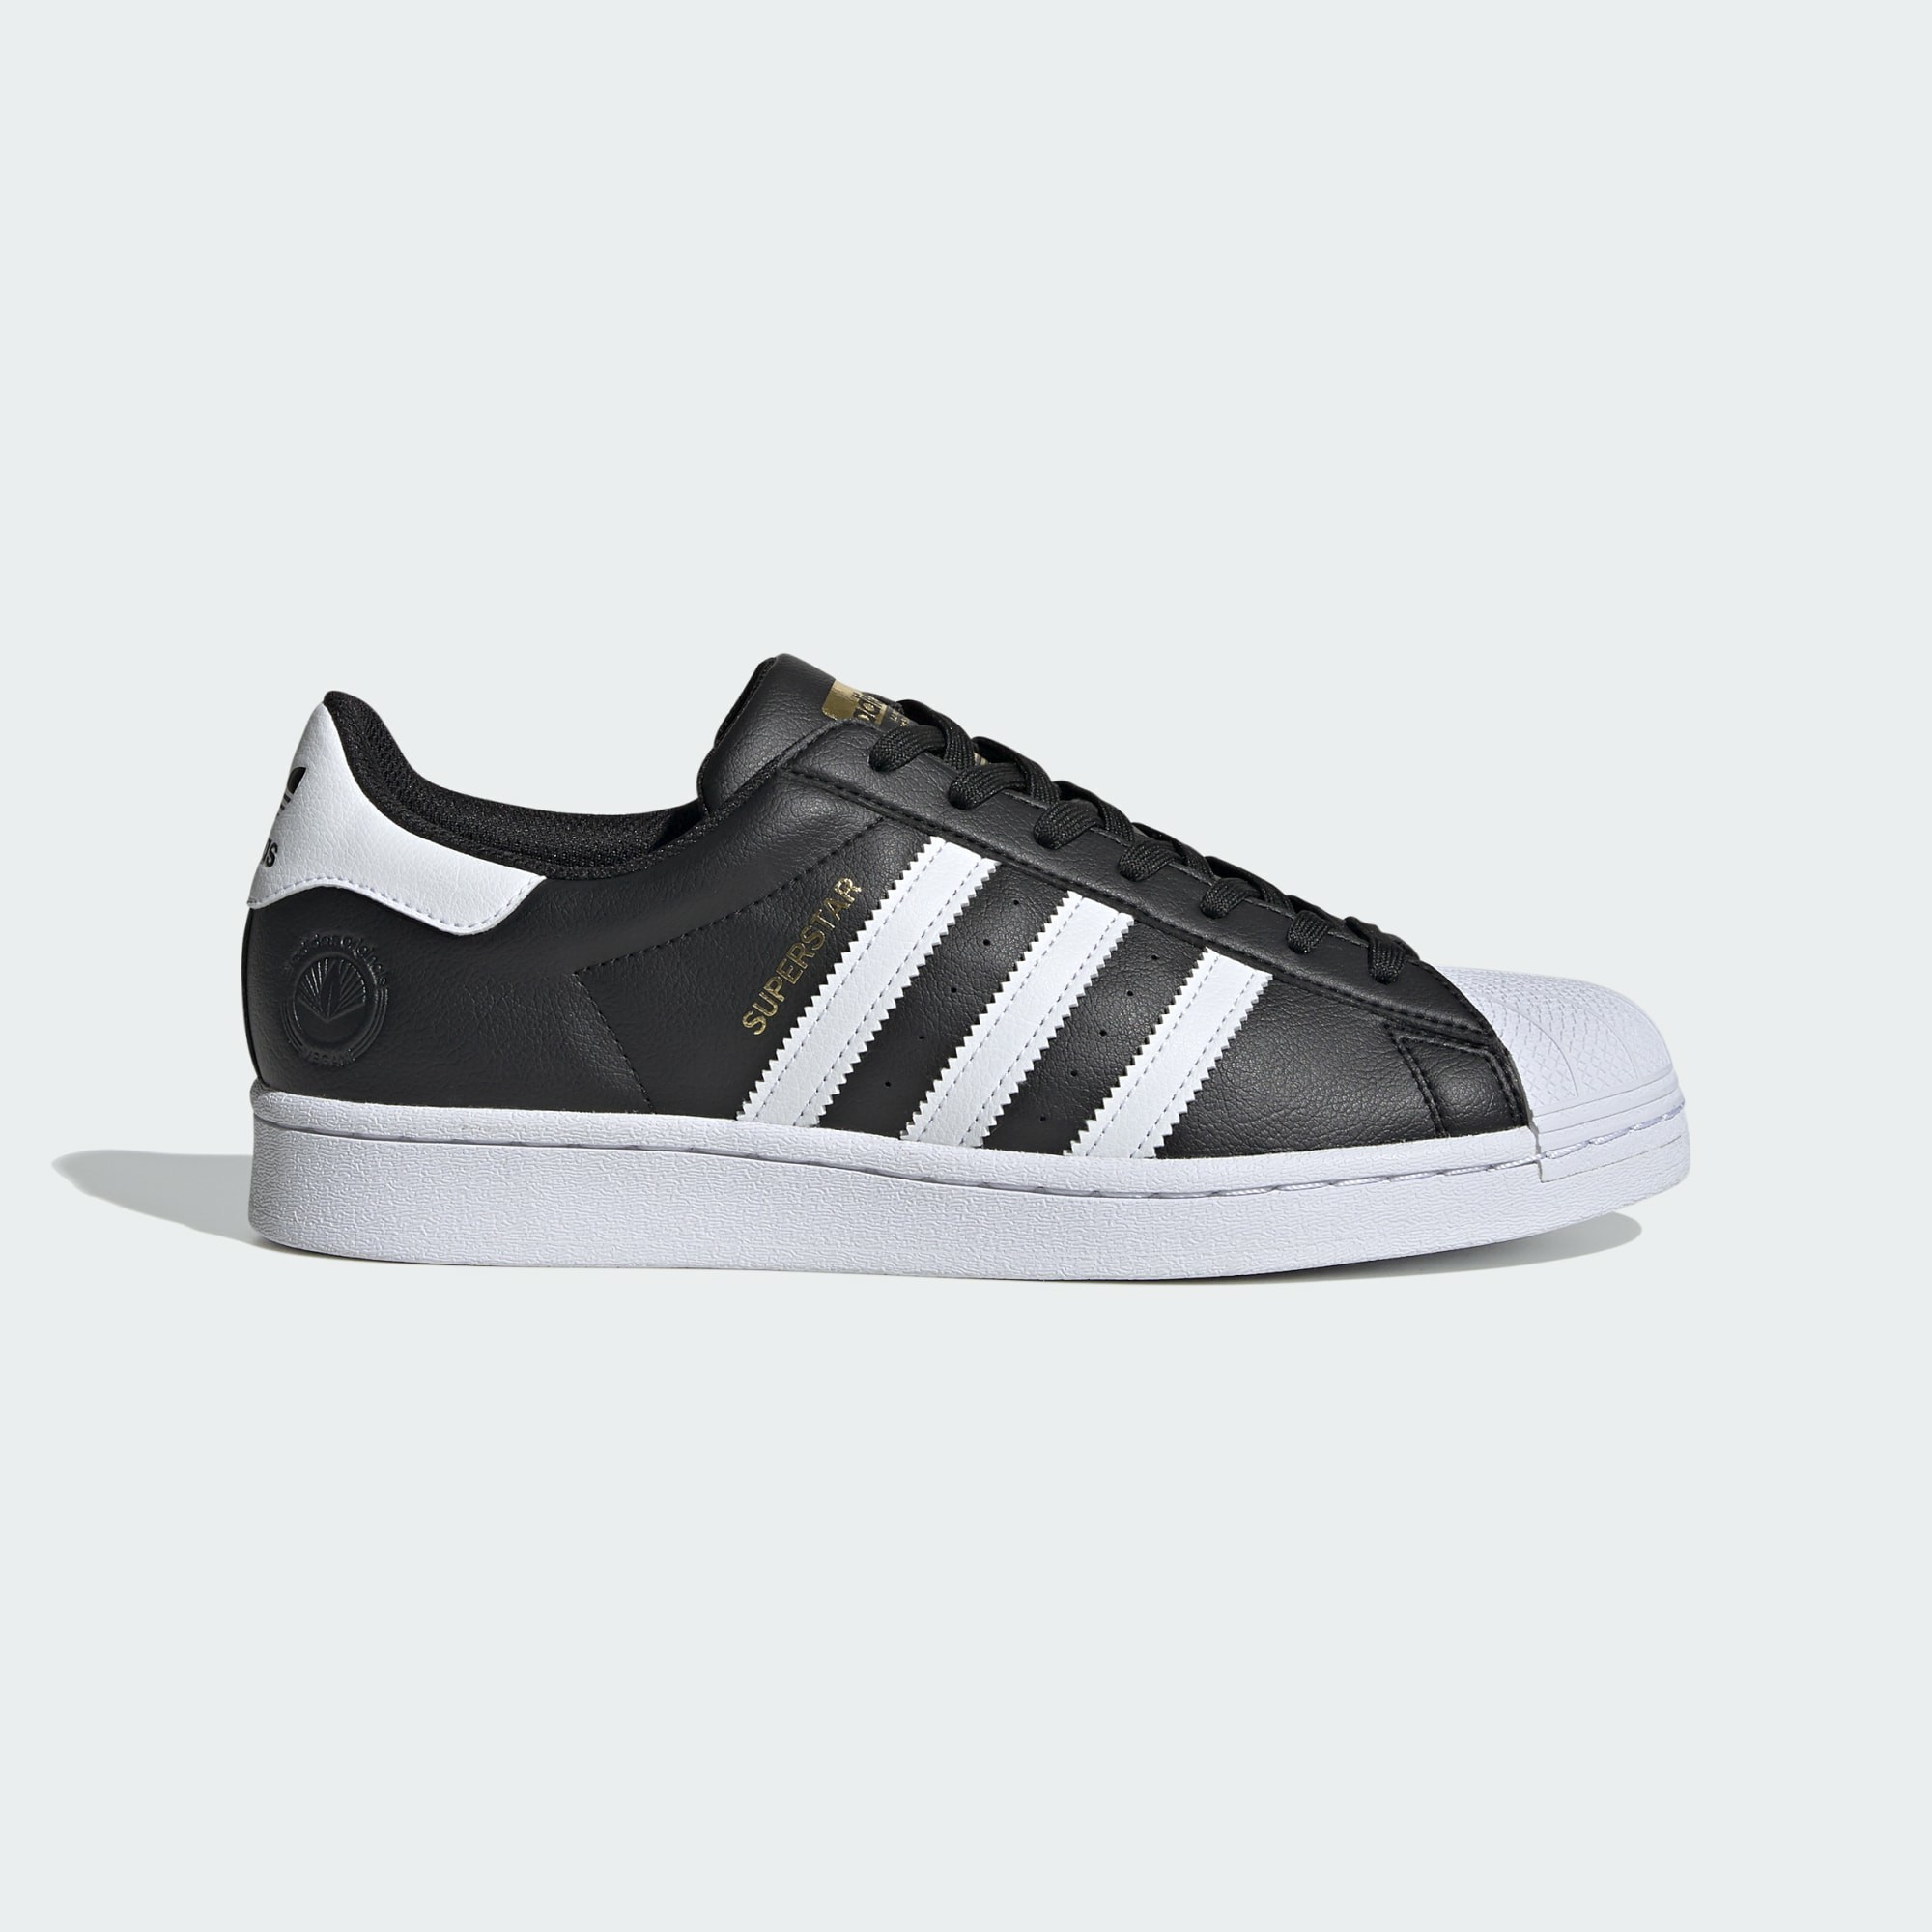 Adidas Superstar Vegan FW2296 Black/White/Gold Metallic